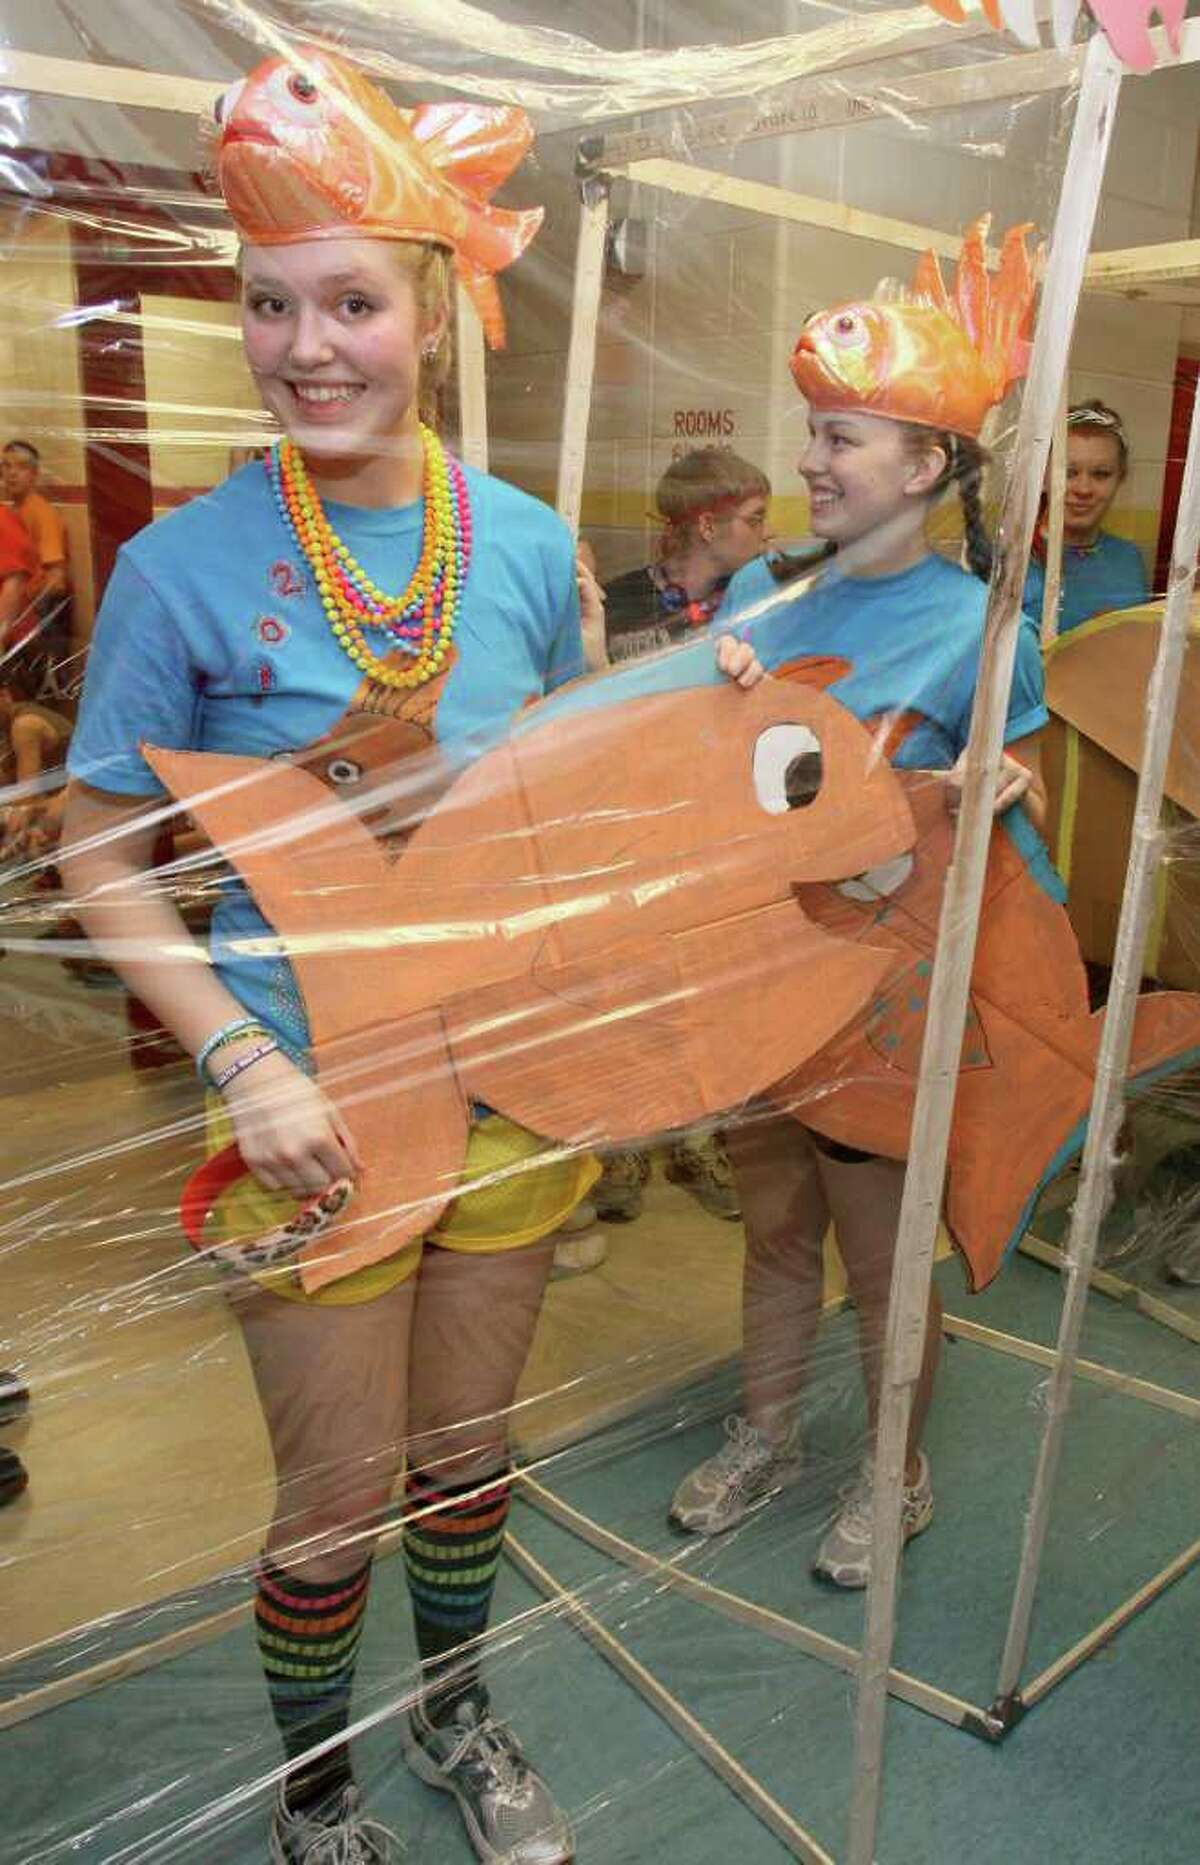 Sara Wells, left, and Devin Smith dressed as fish in a tank made of cellophane for the costume contest. Glens Falls, N.Y., March 4, 2011 (Photo by Joe Putrock / Special to the Times Union)